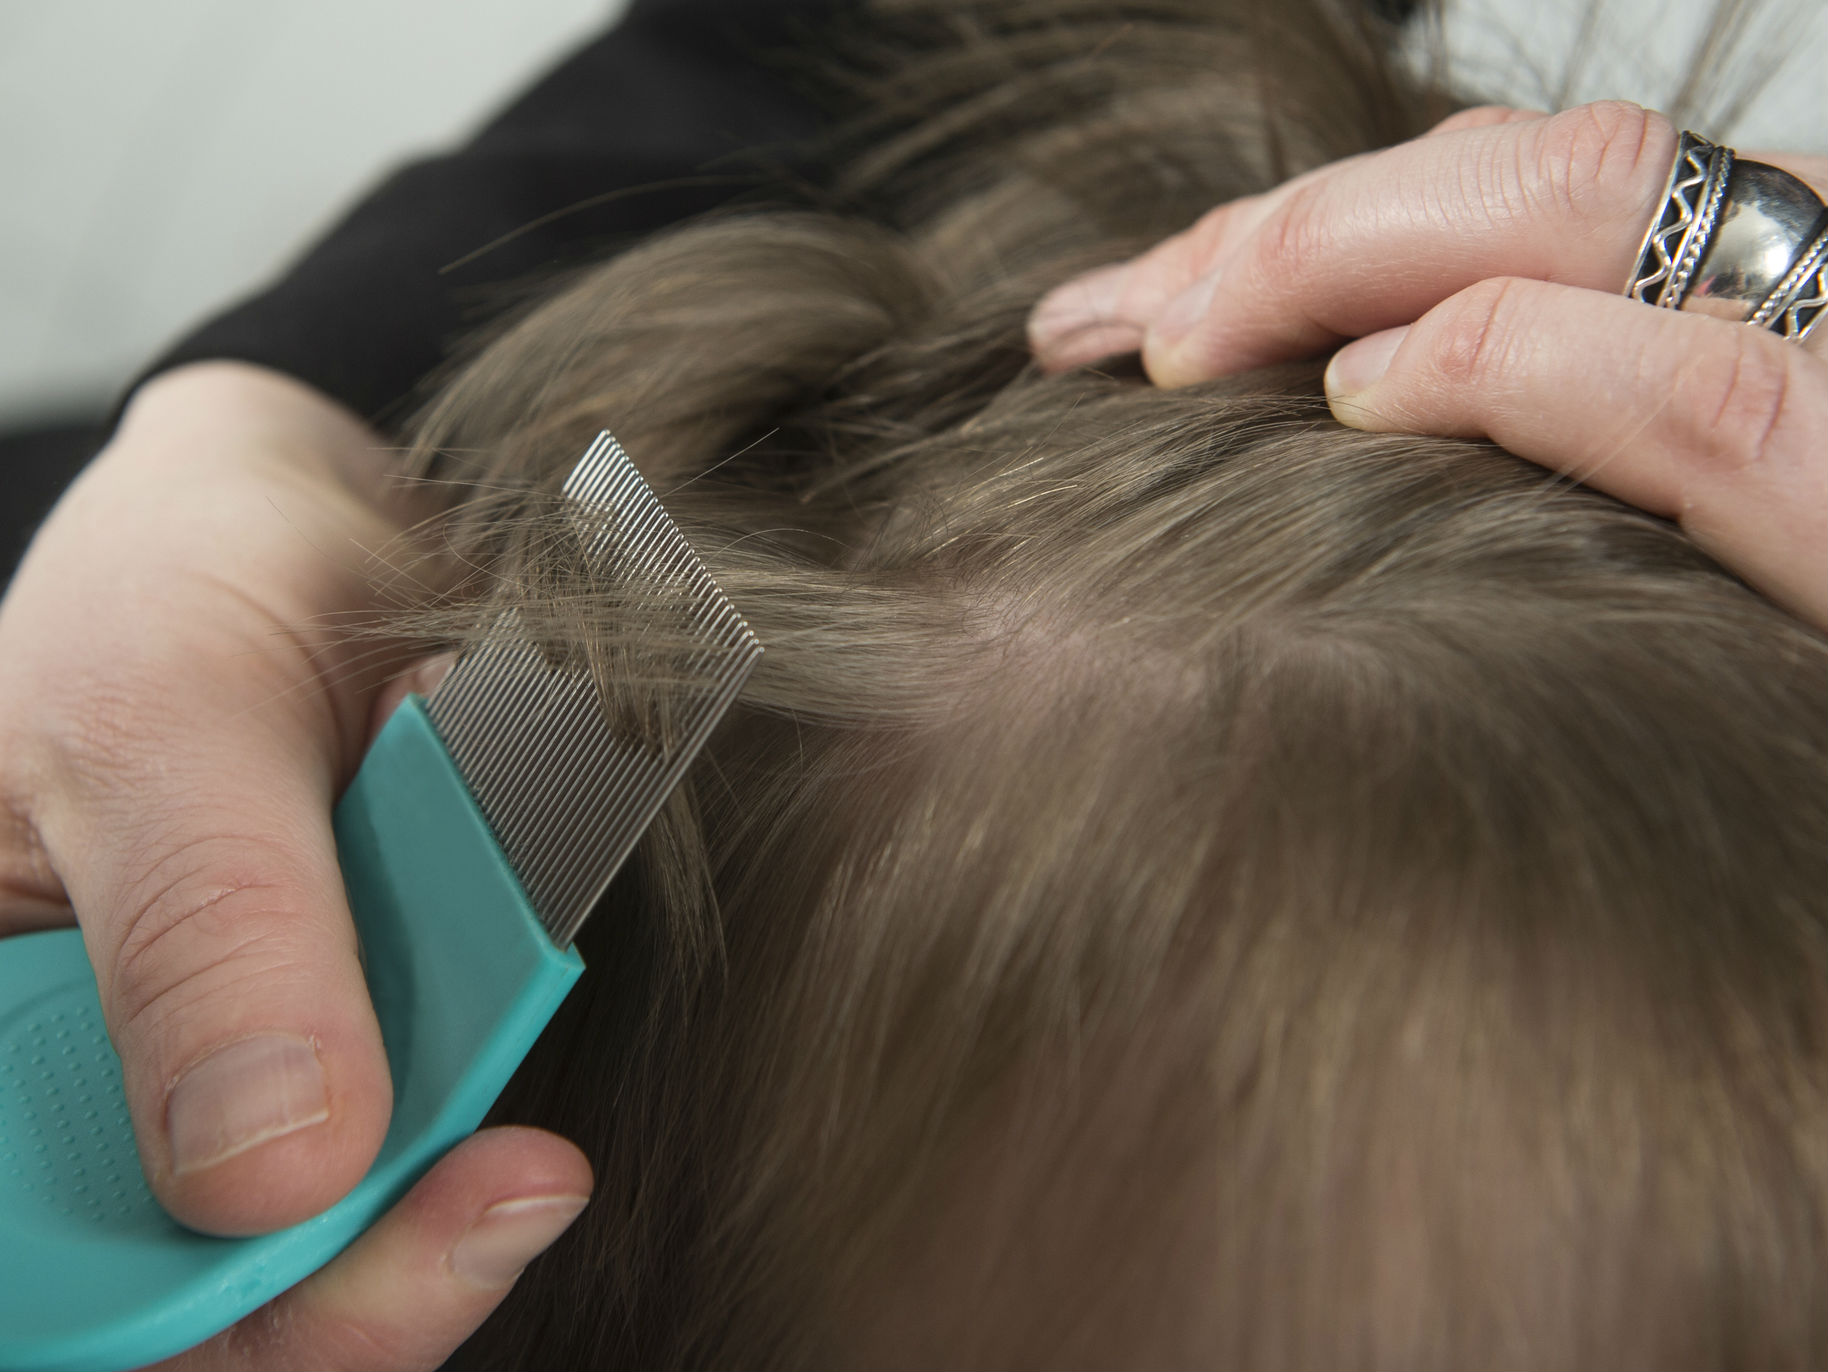 Head and linen lice, as well as methods of combating them